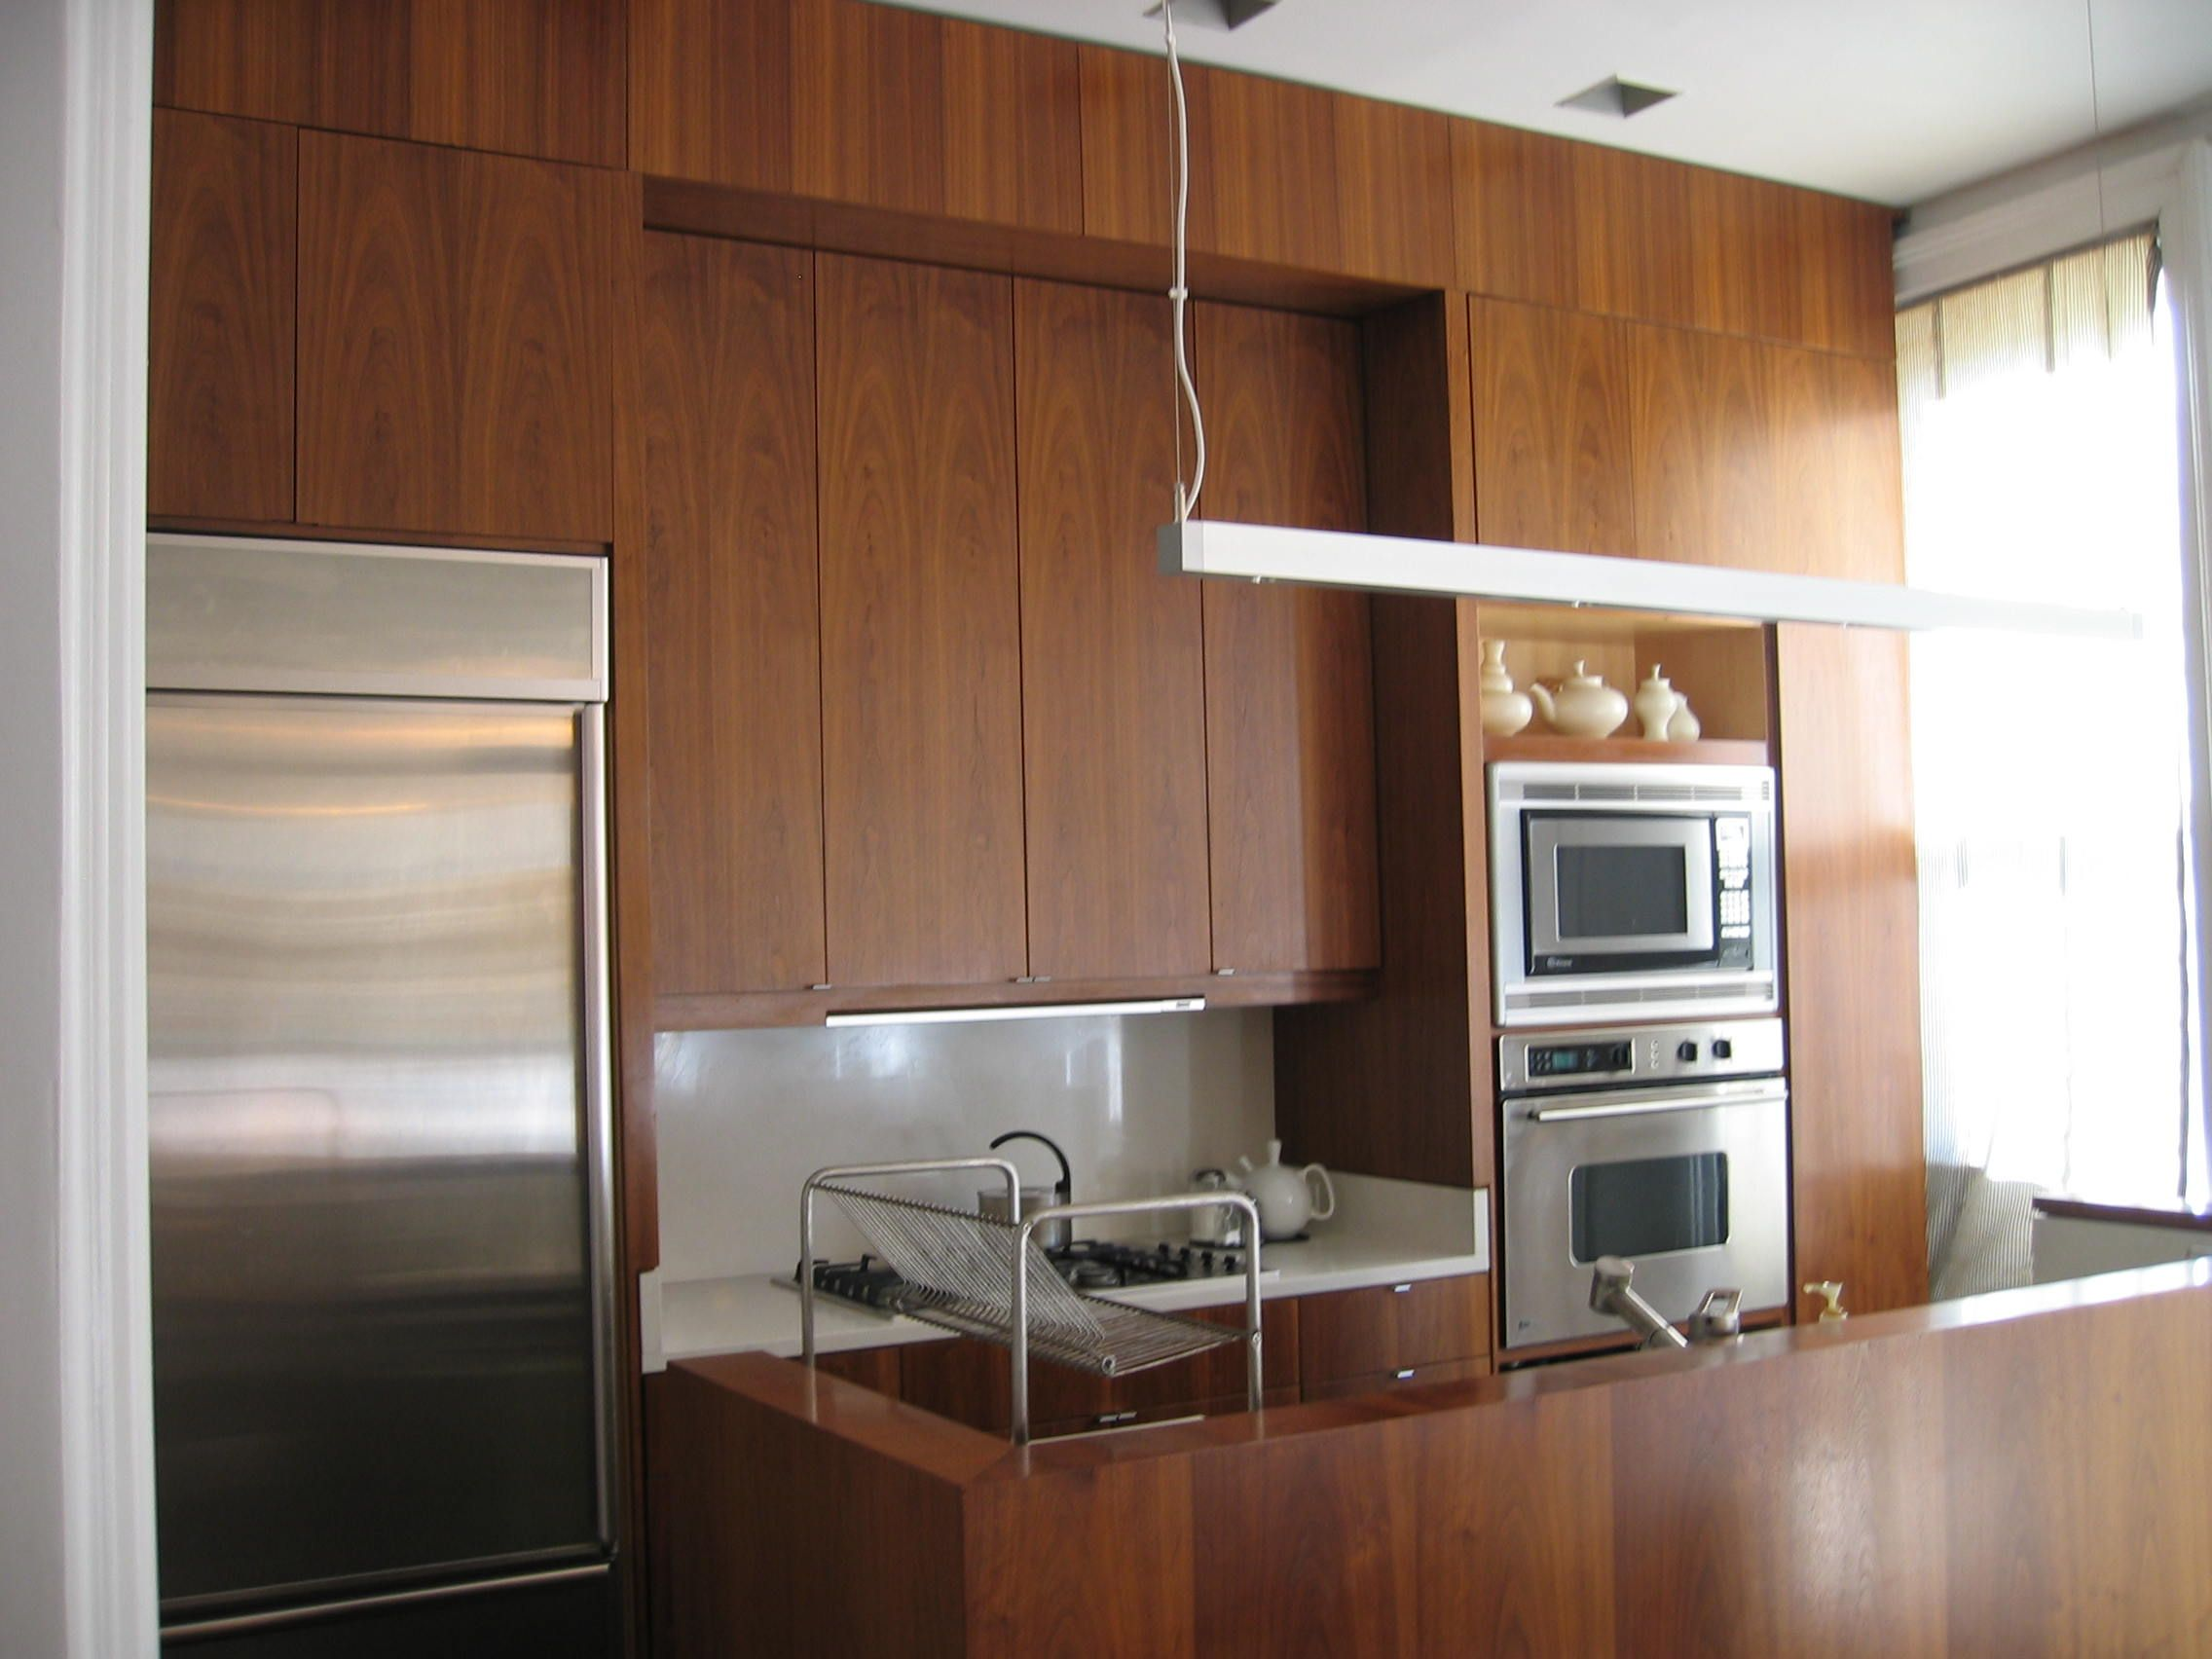 Fitted Kitchen Design Ideas Part - 36: Amazing Tiny House Kitchen Design Ideas For You